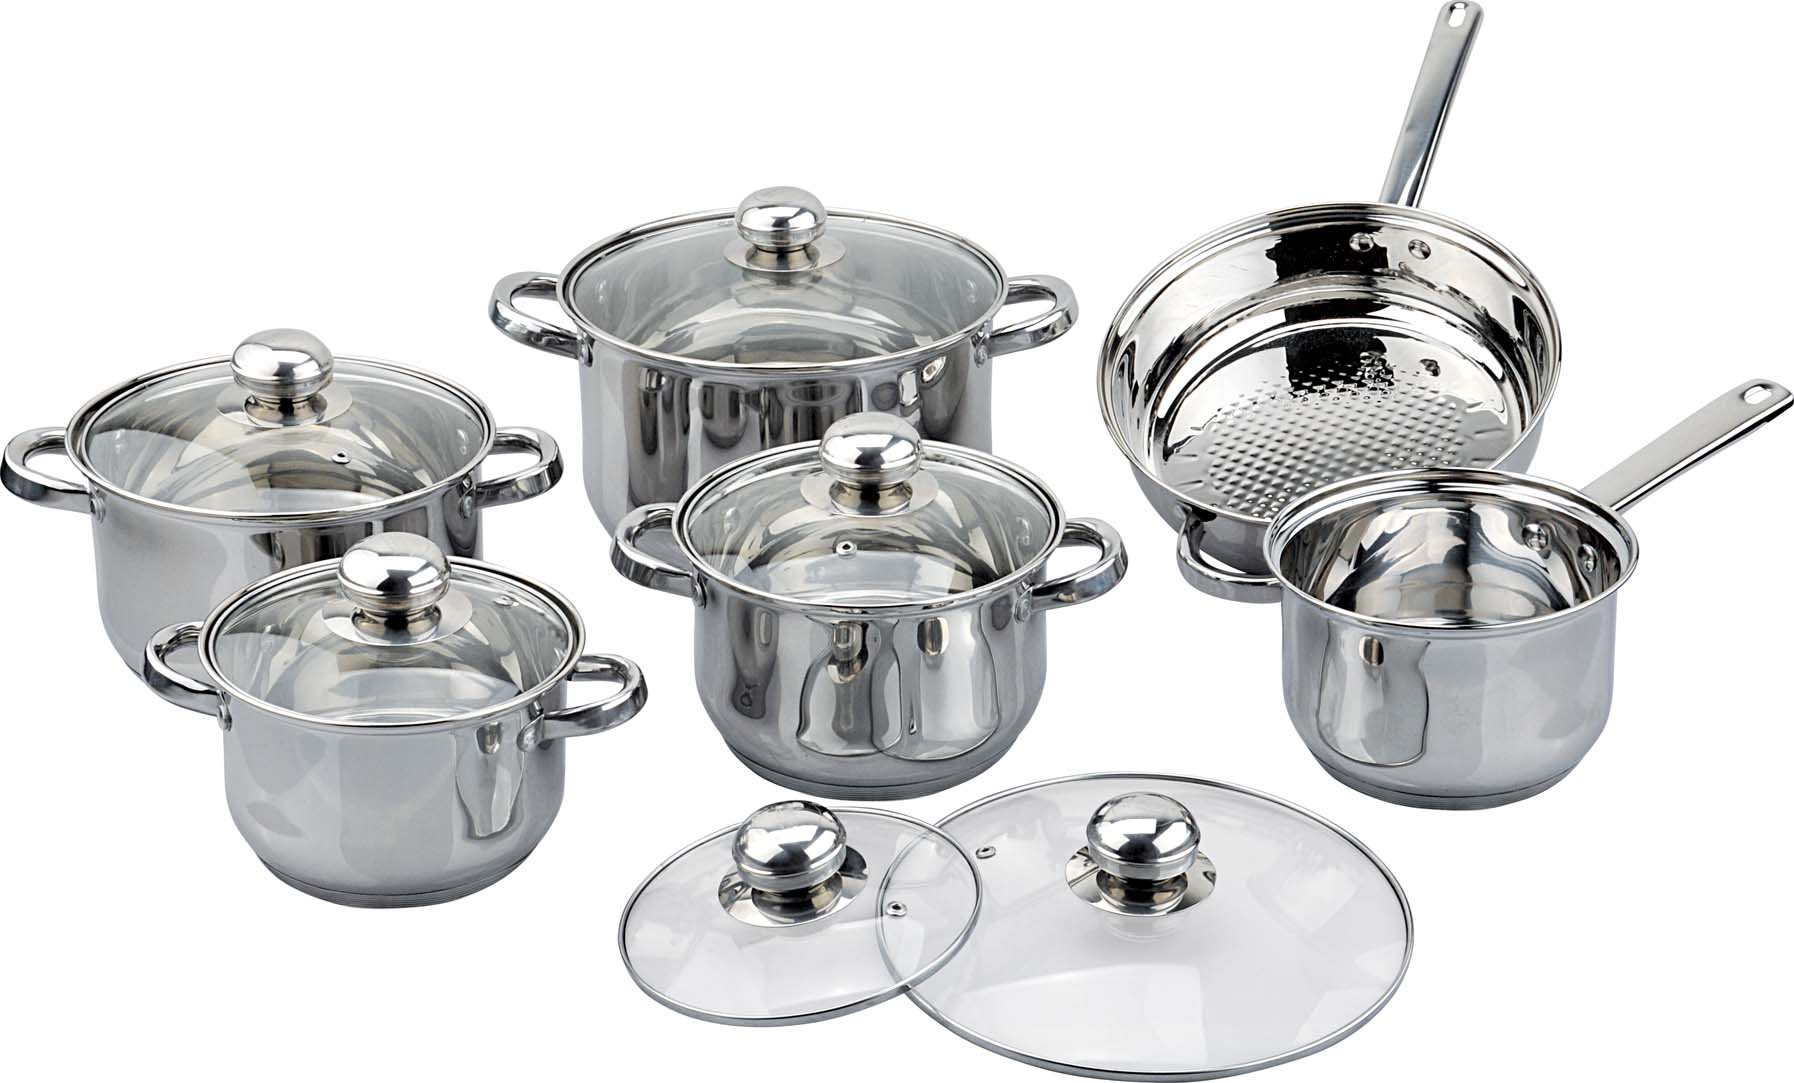 12pcs belly shape cookware set